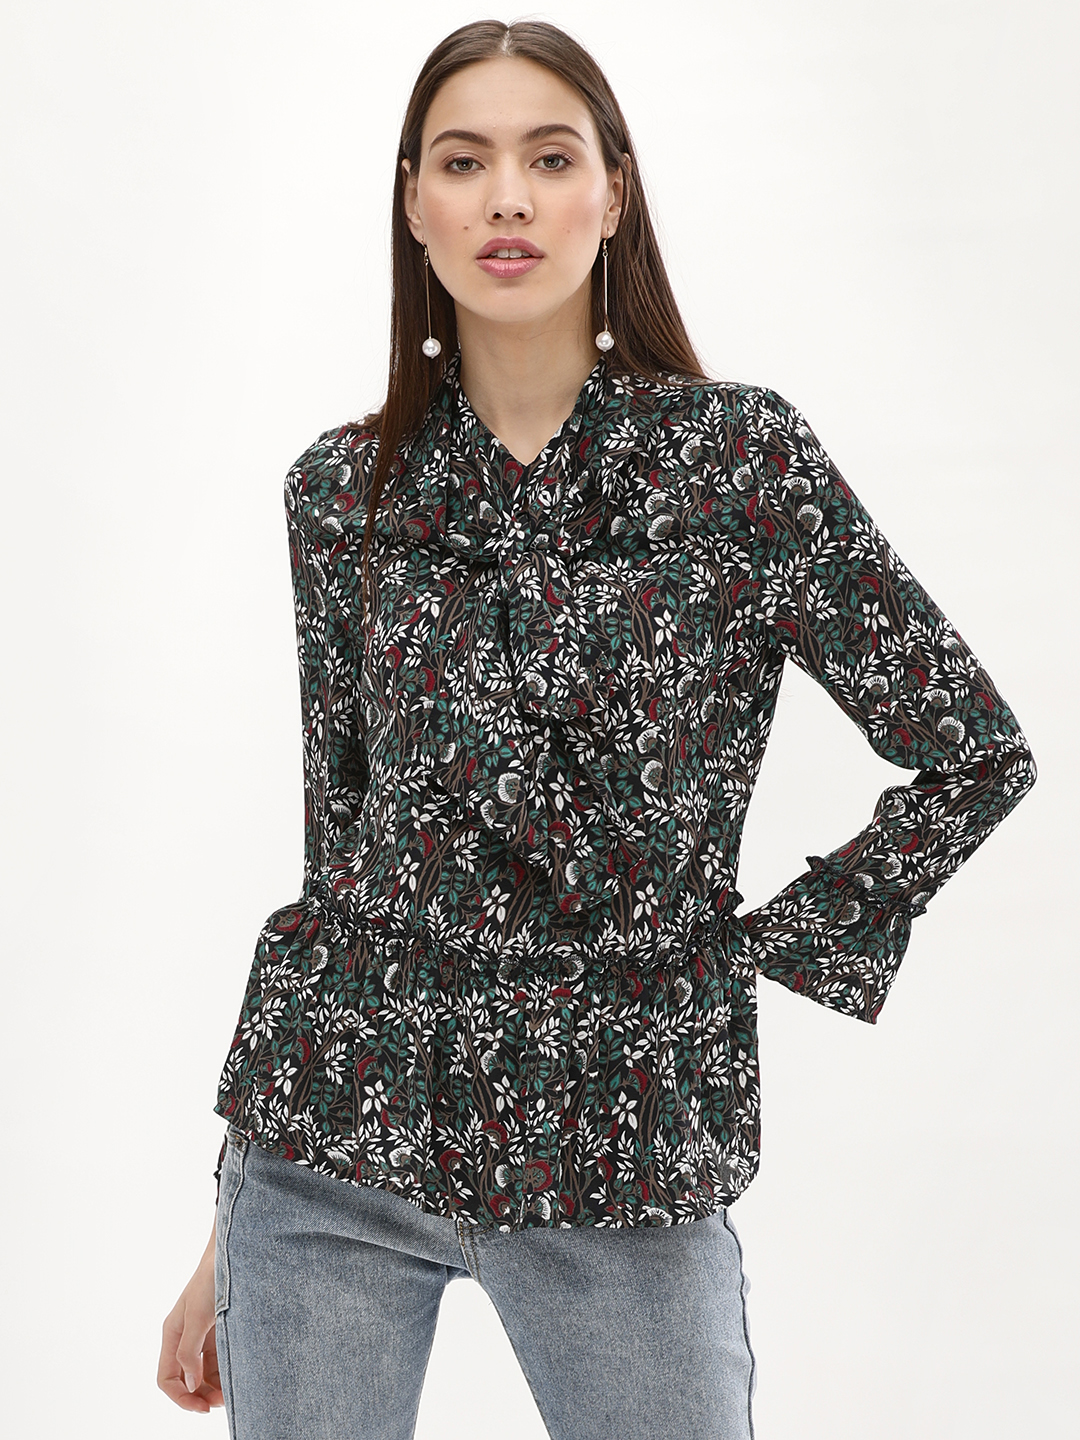 PostFold MIX Printed Tie Detail Peplum Blouse 1